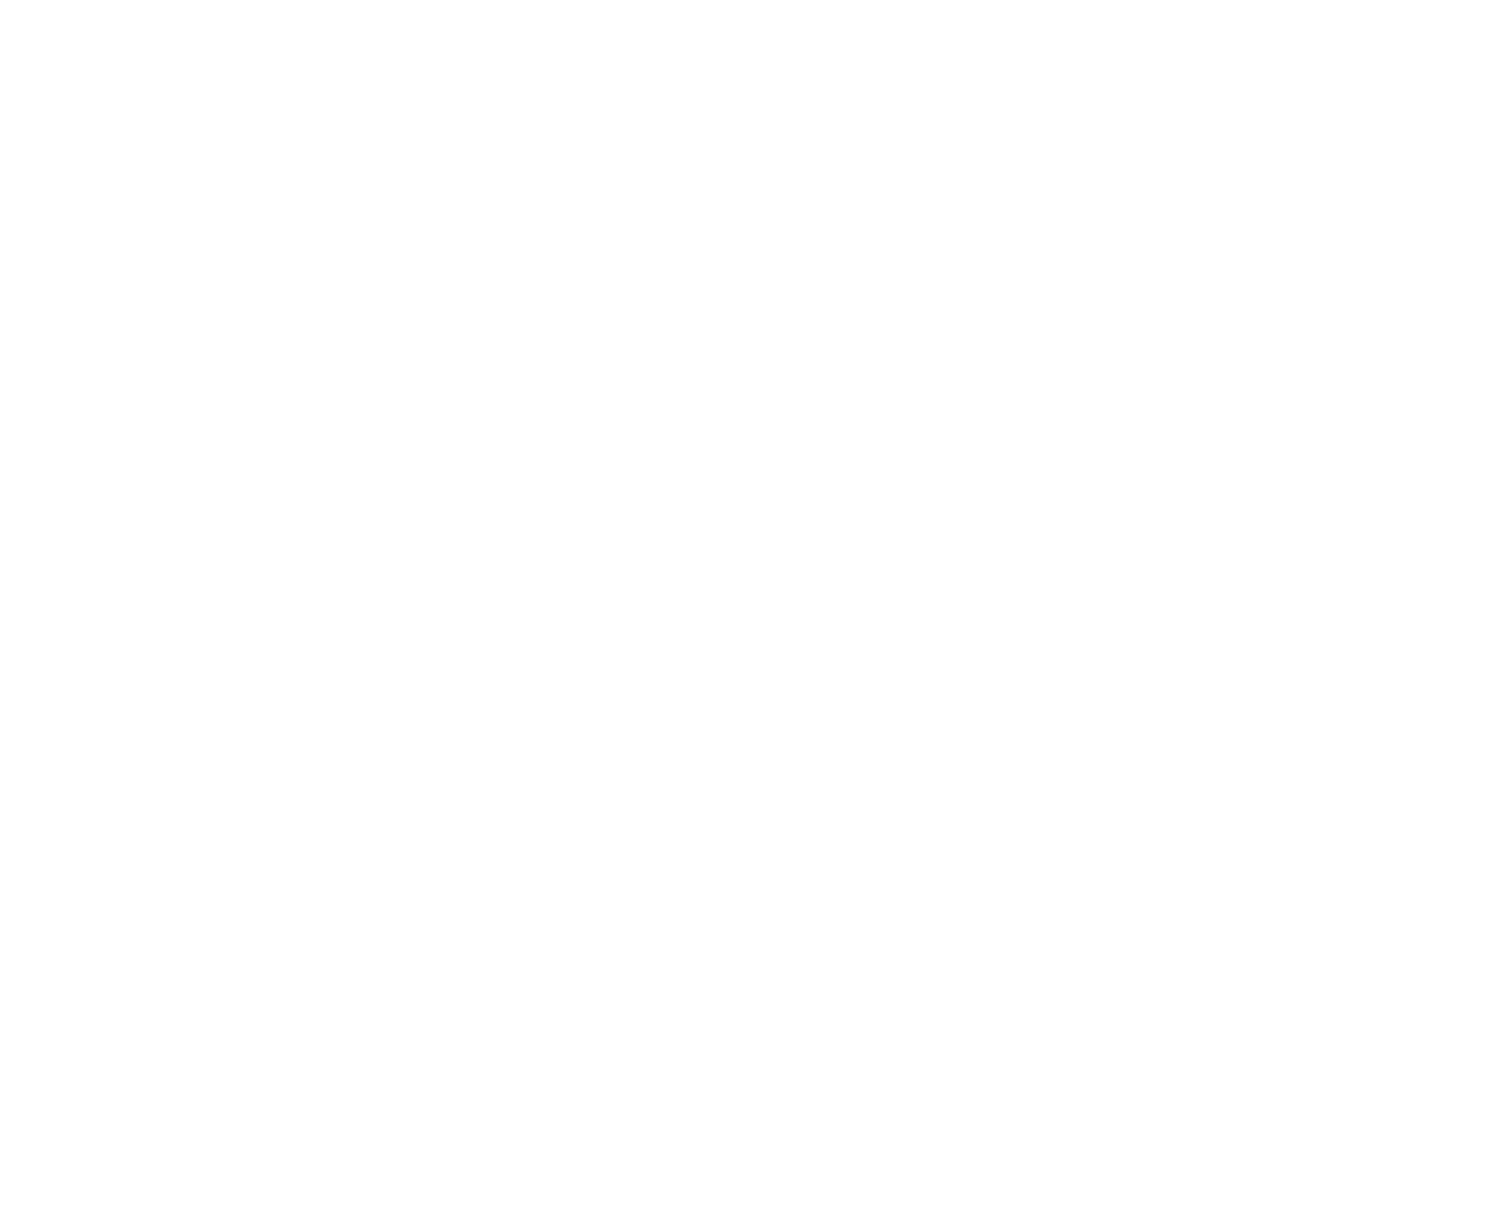 California Coffee Bar